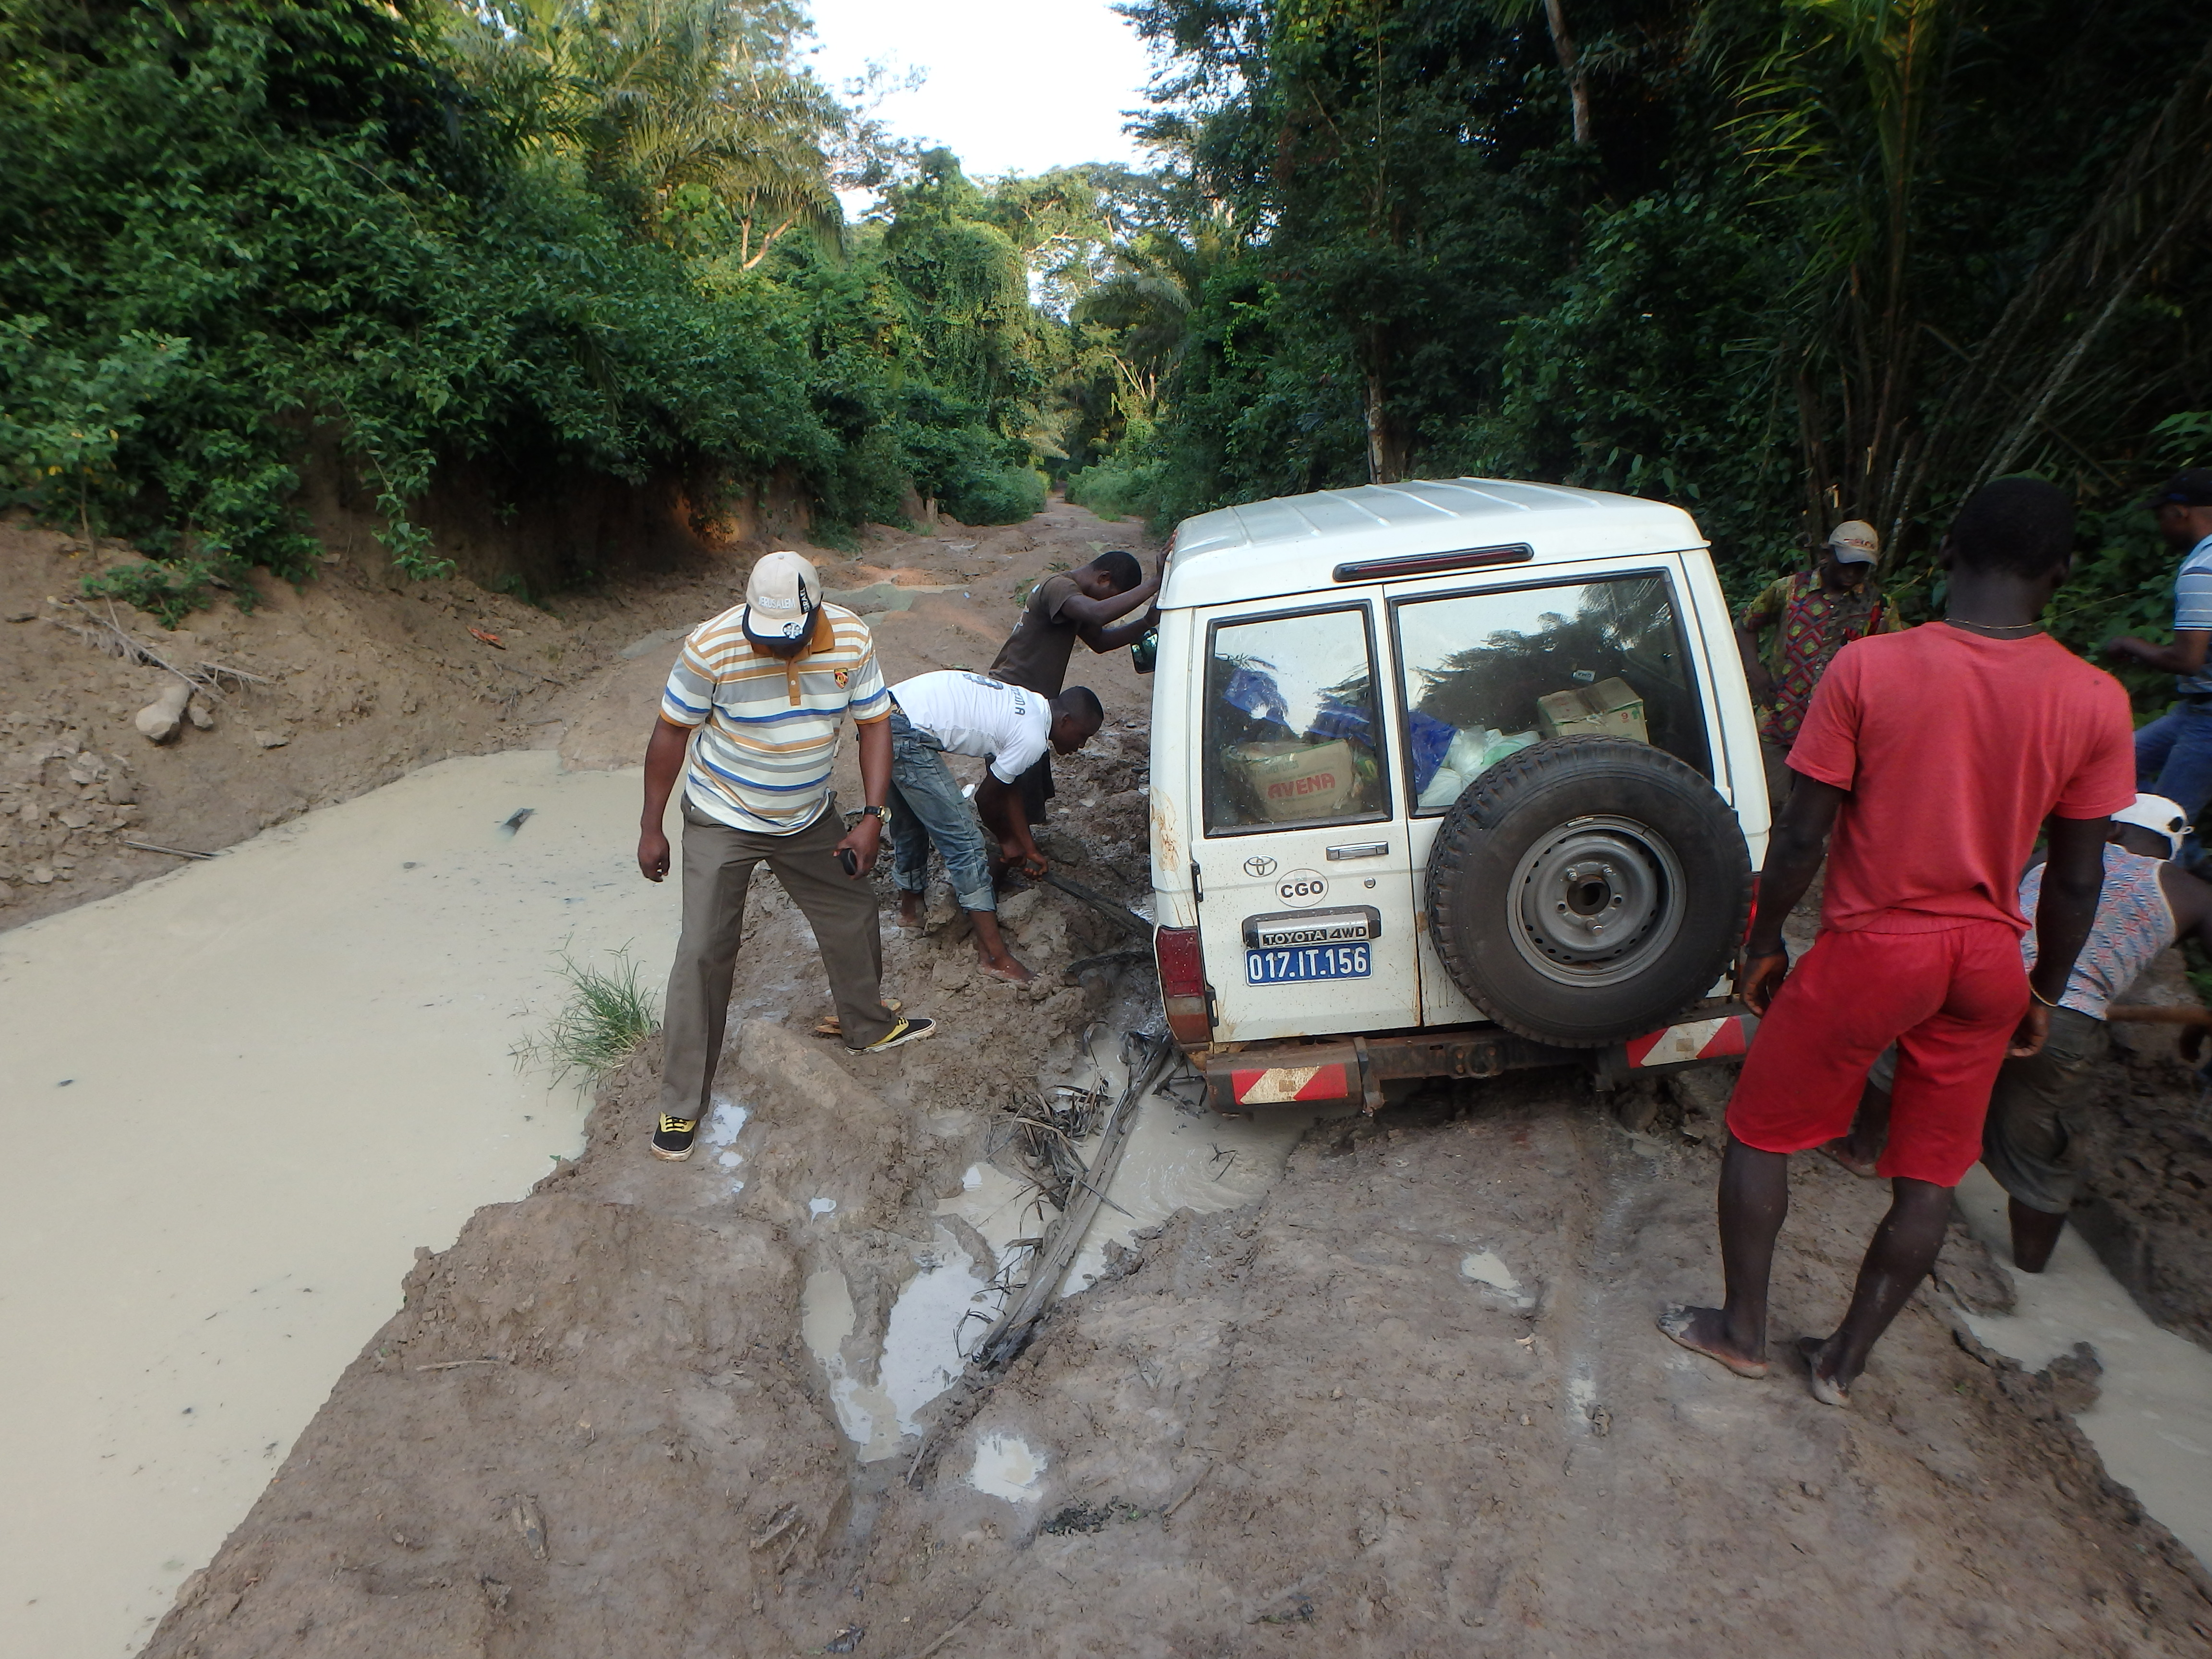 Dirt roads and heavy rains can make executing any project in rural Congo a logistical challenge.